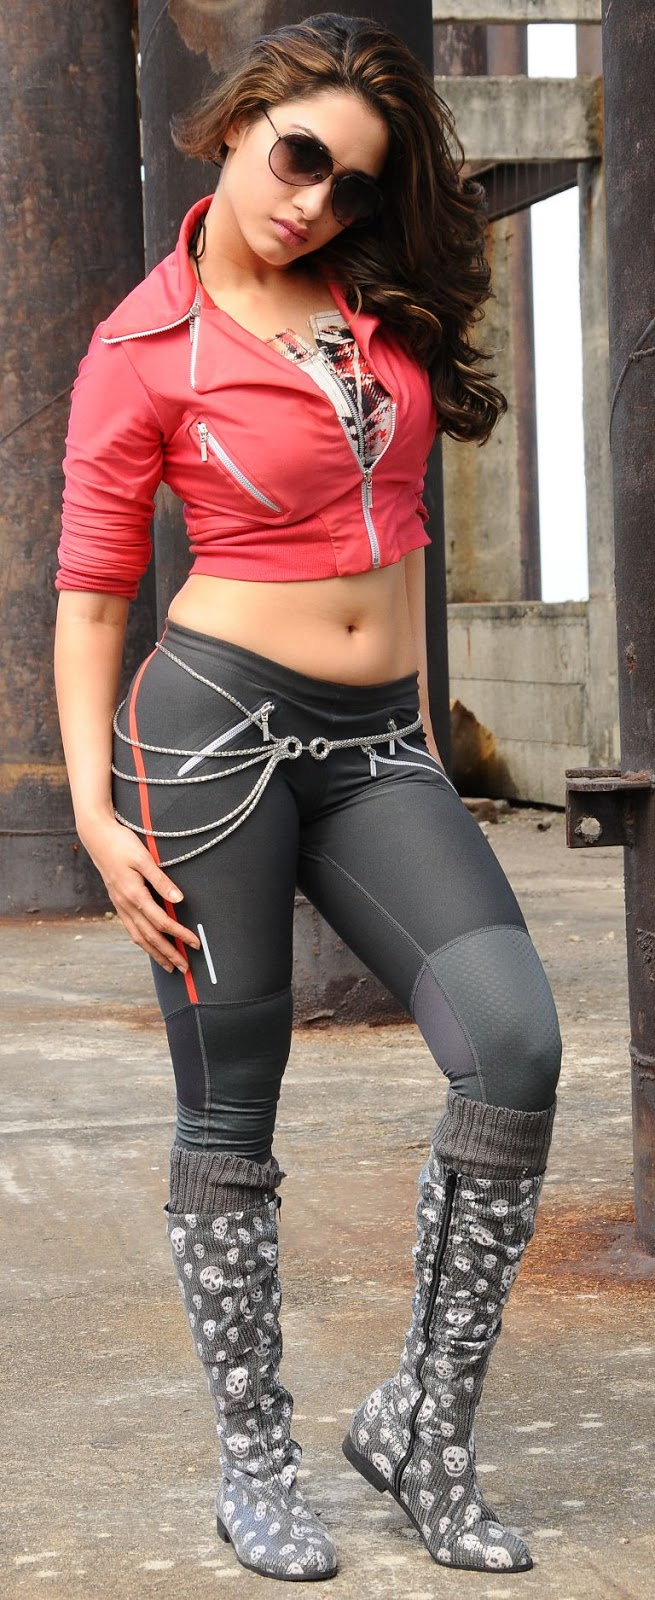 tamanna+hot+photos+in+tight+jeans